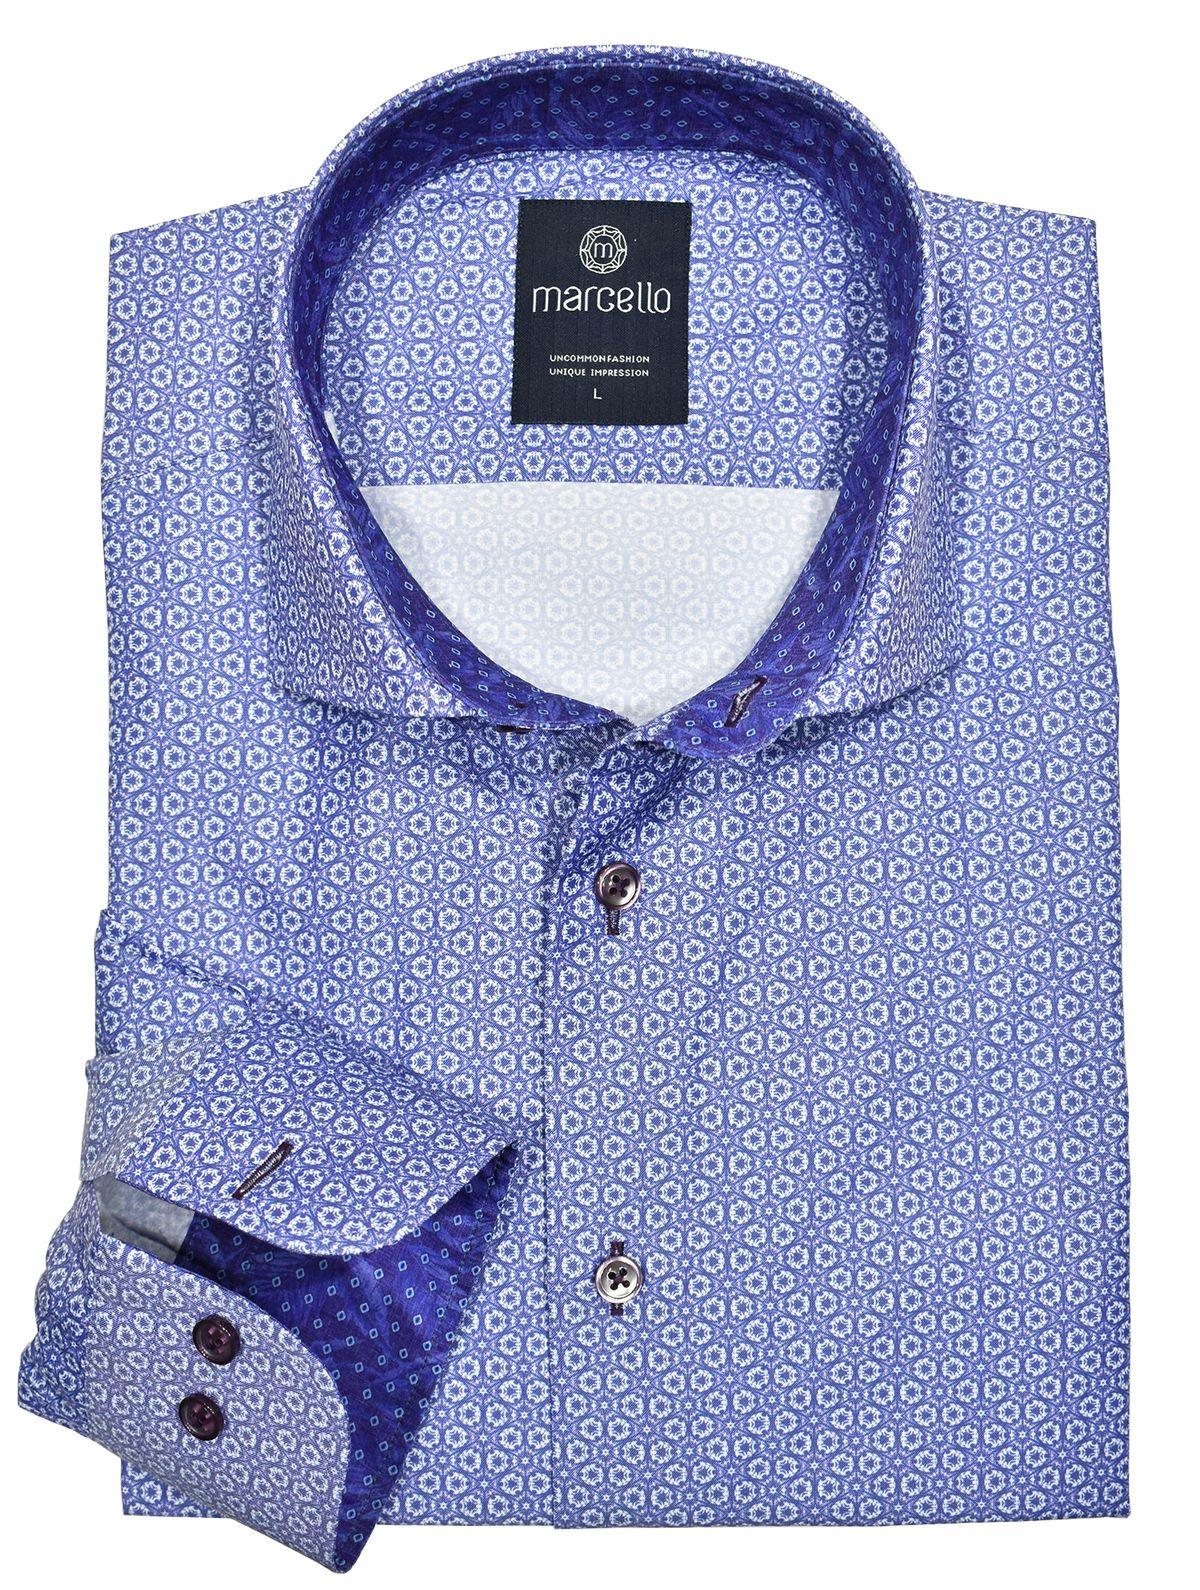 Marcello Soft Lilac Medallion Shirt. The perfect traditional medallion in fashion lilac that works perfectly with any bottoms.